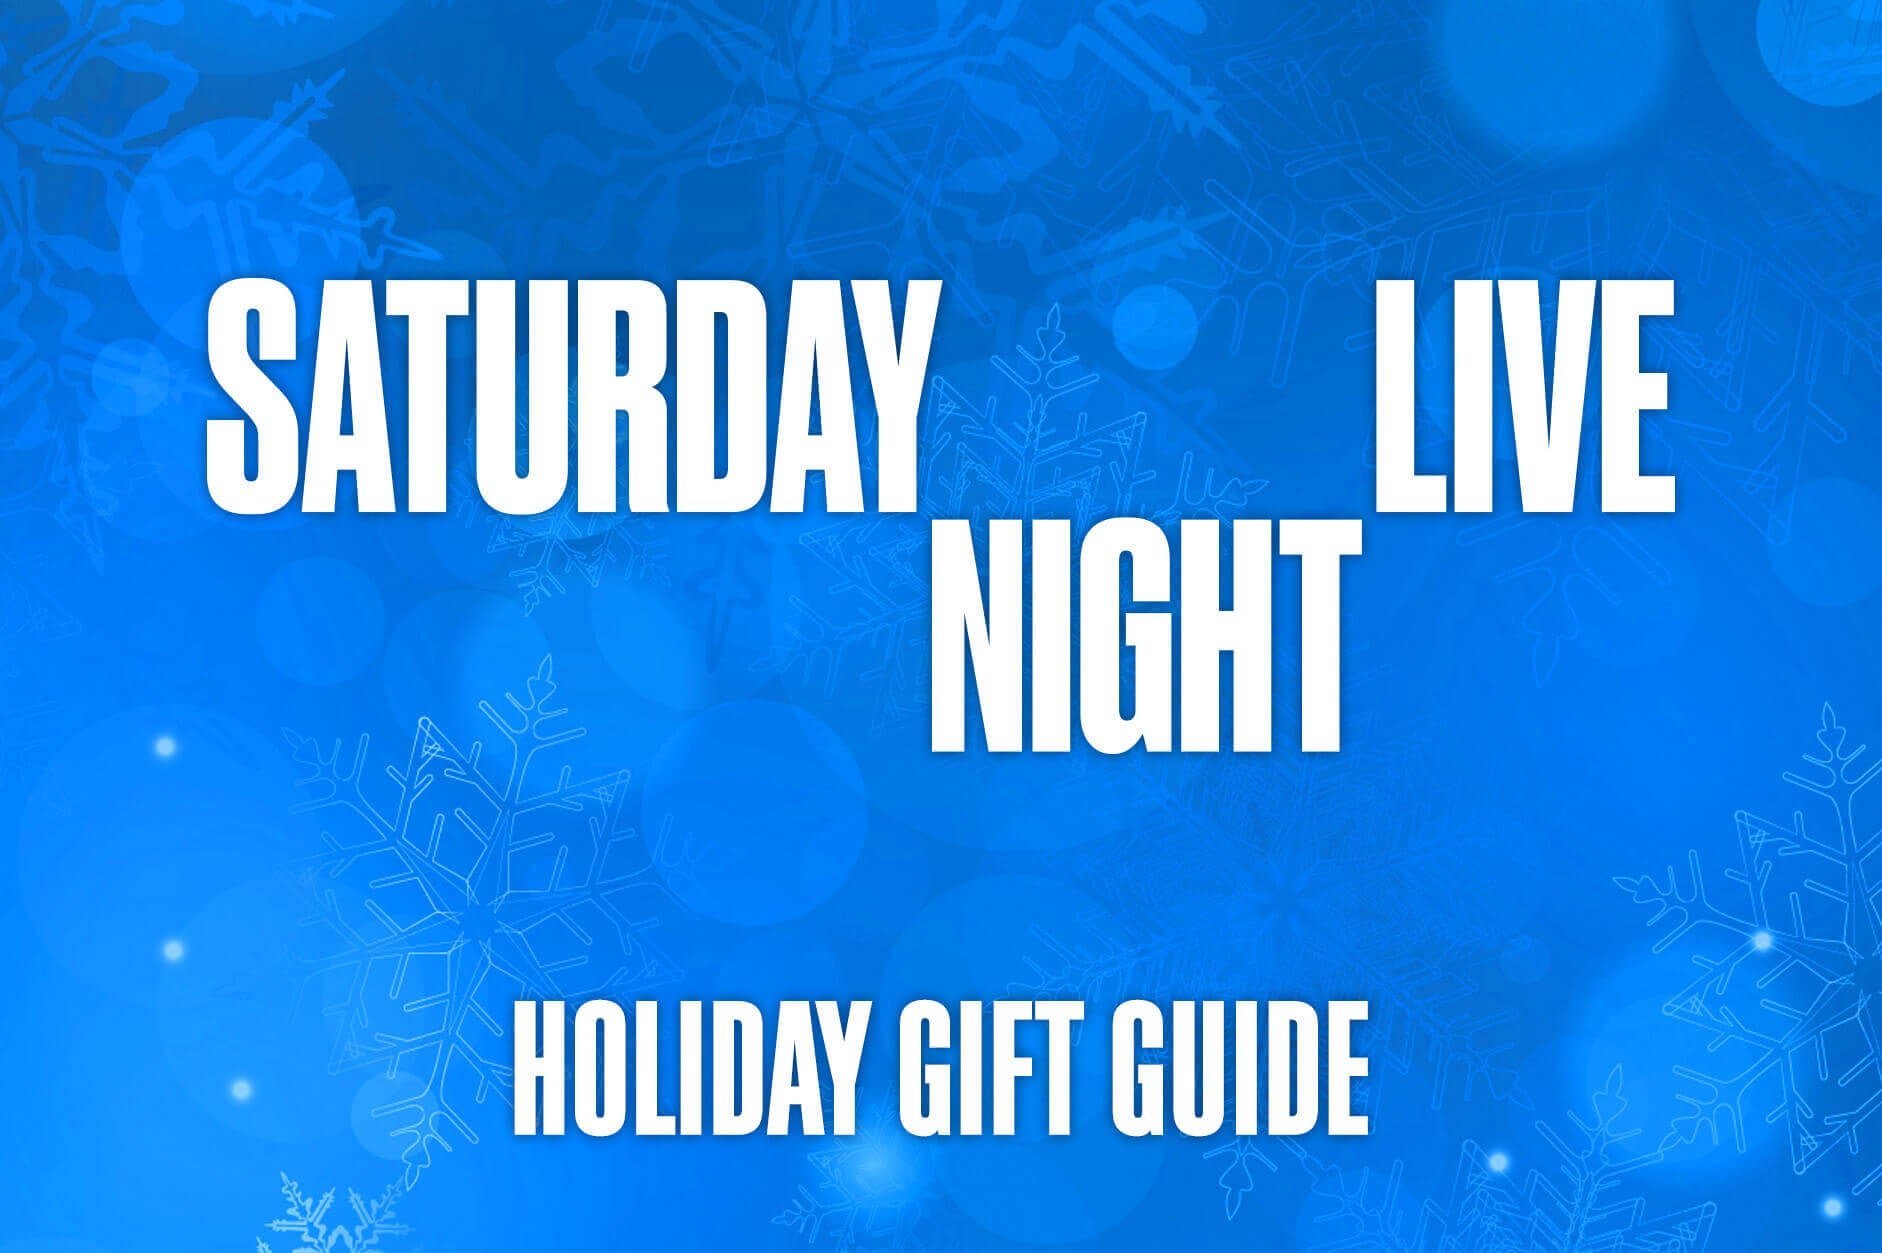 Saturday Night Live Holiday Gift Guide